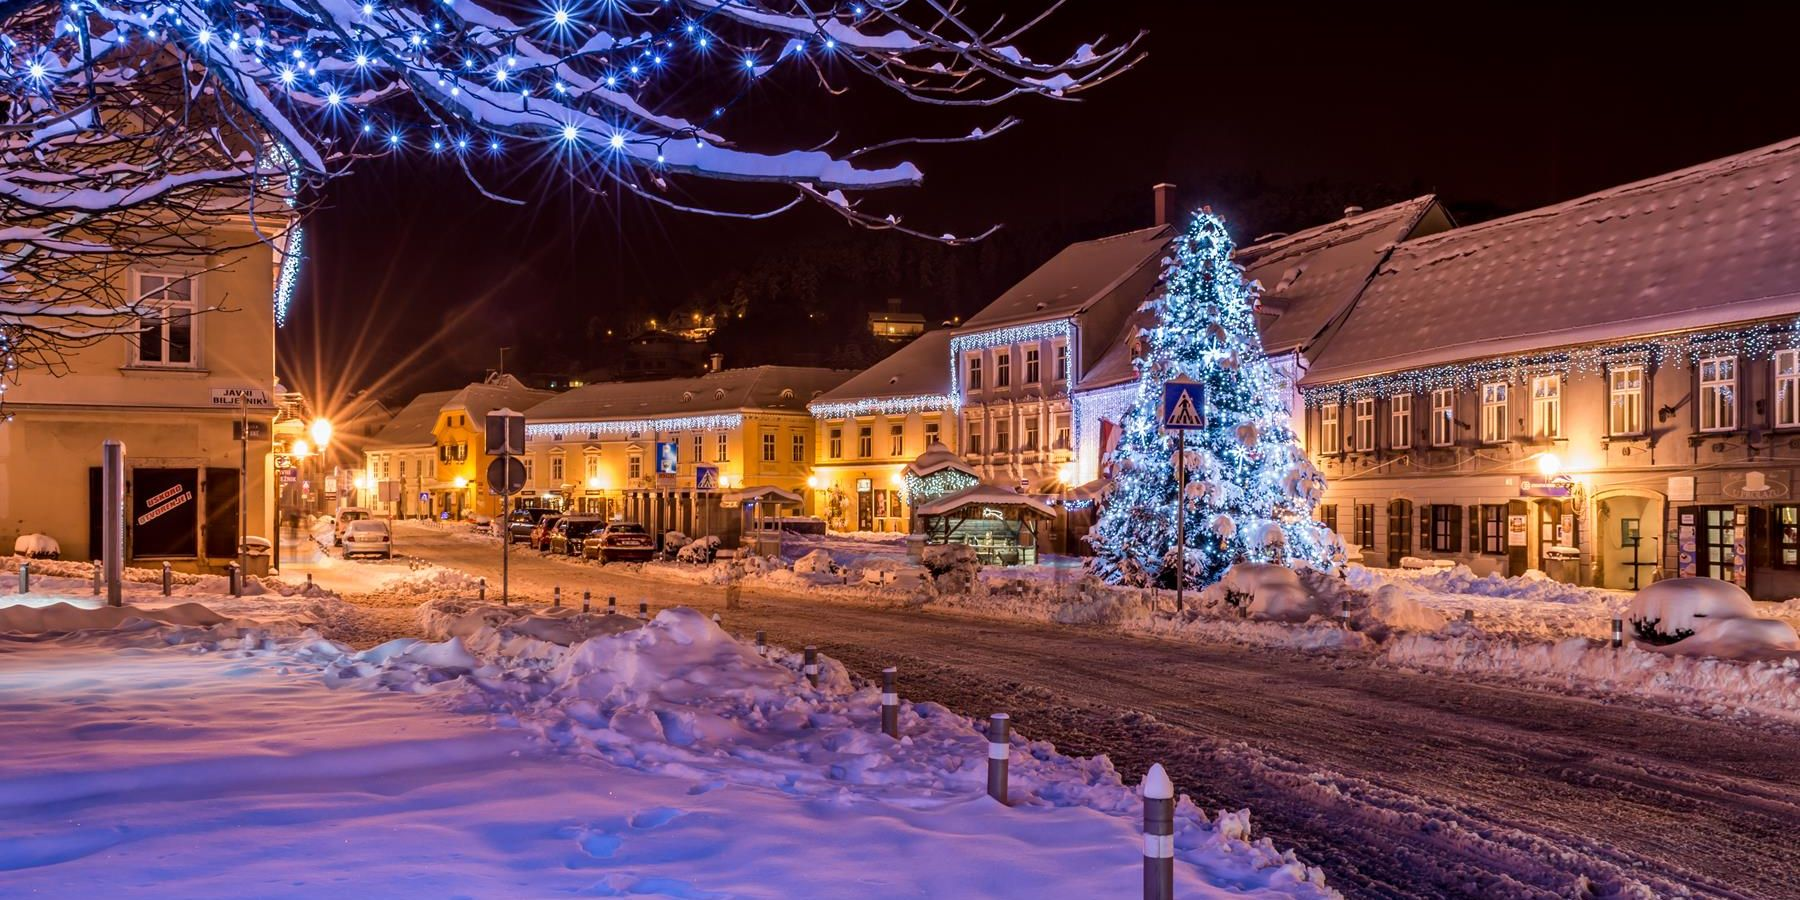 Advent in Samobor